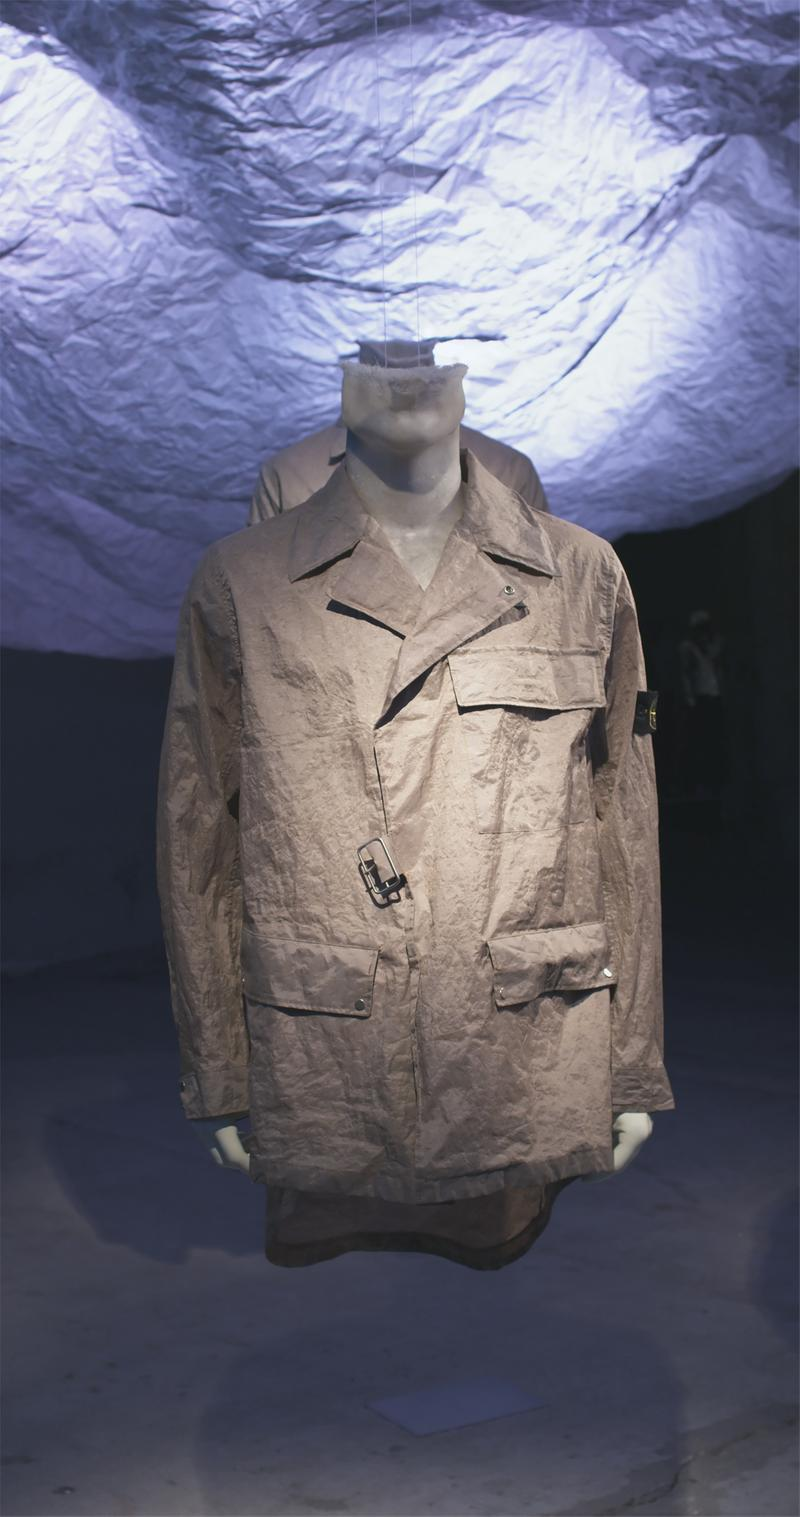 Khaki jacket with notched collar, three flap pockets, and Stone Island badge on upper left sleeve displayed on mannequin bust